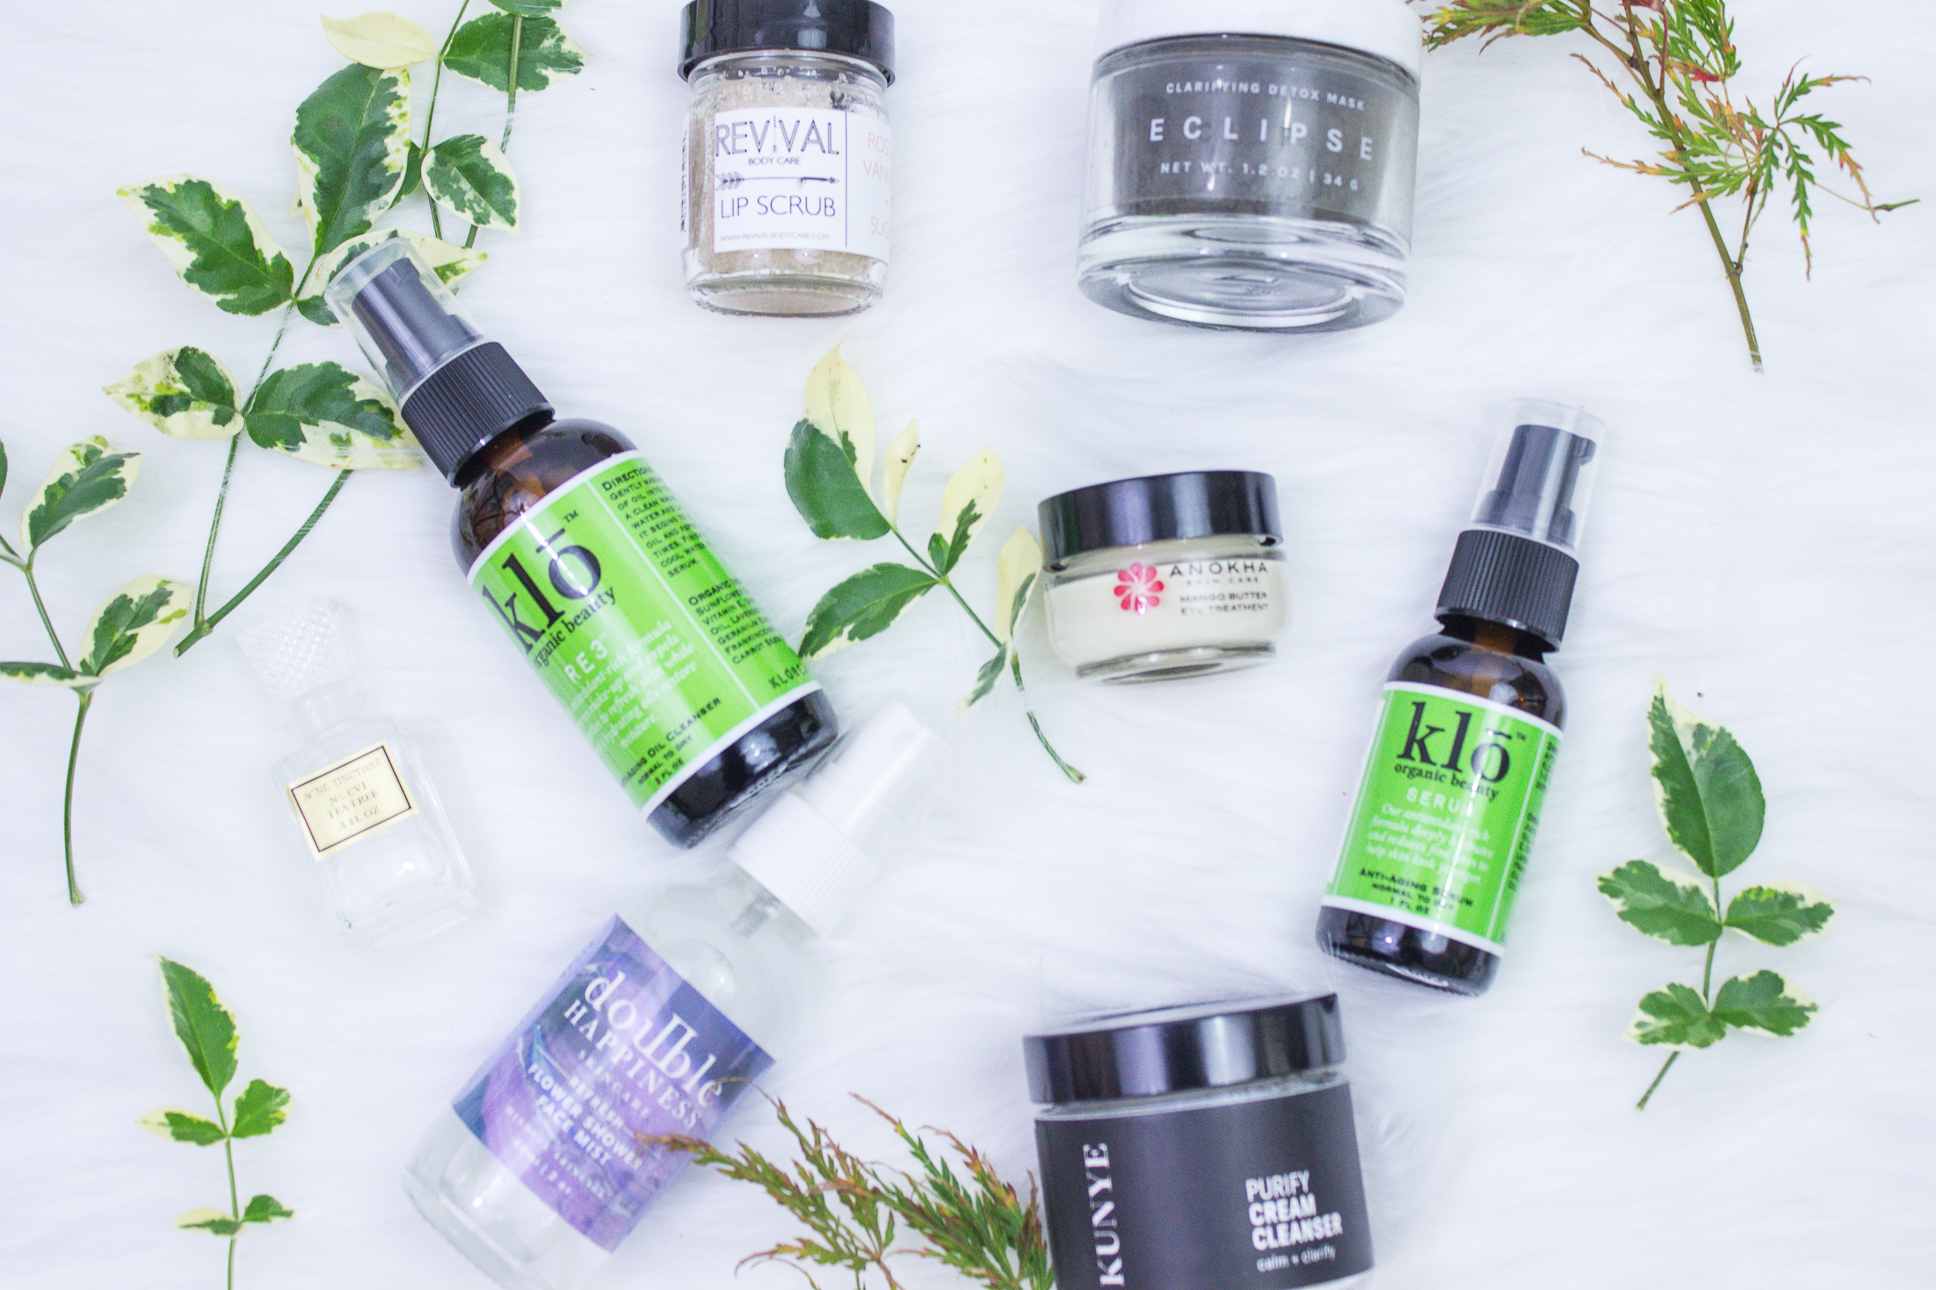 NAVAGO: Natural & Organic Products from Independent Vendors – Giveaway ($280 Value)